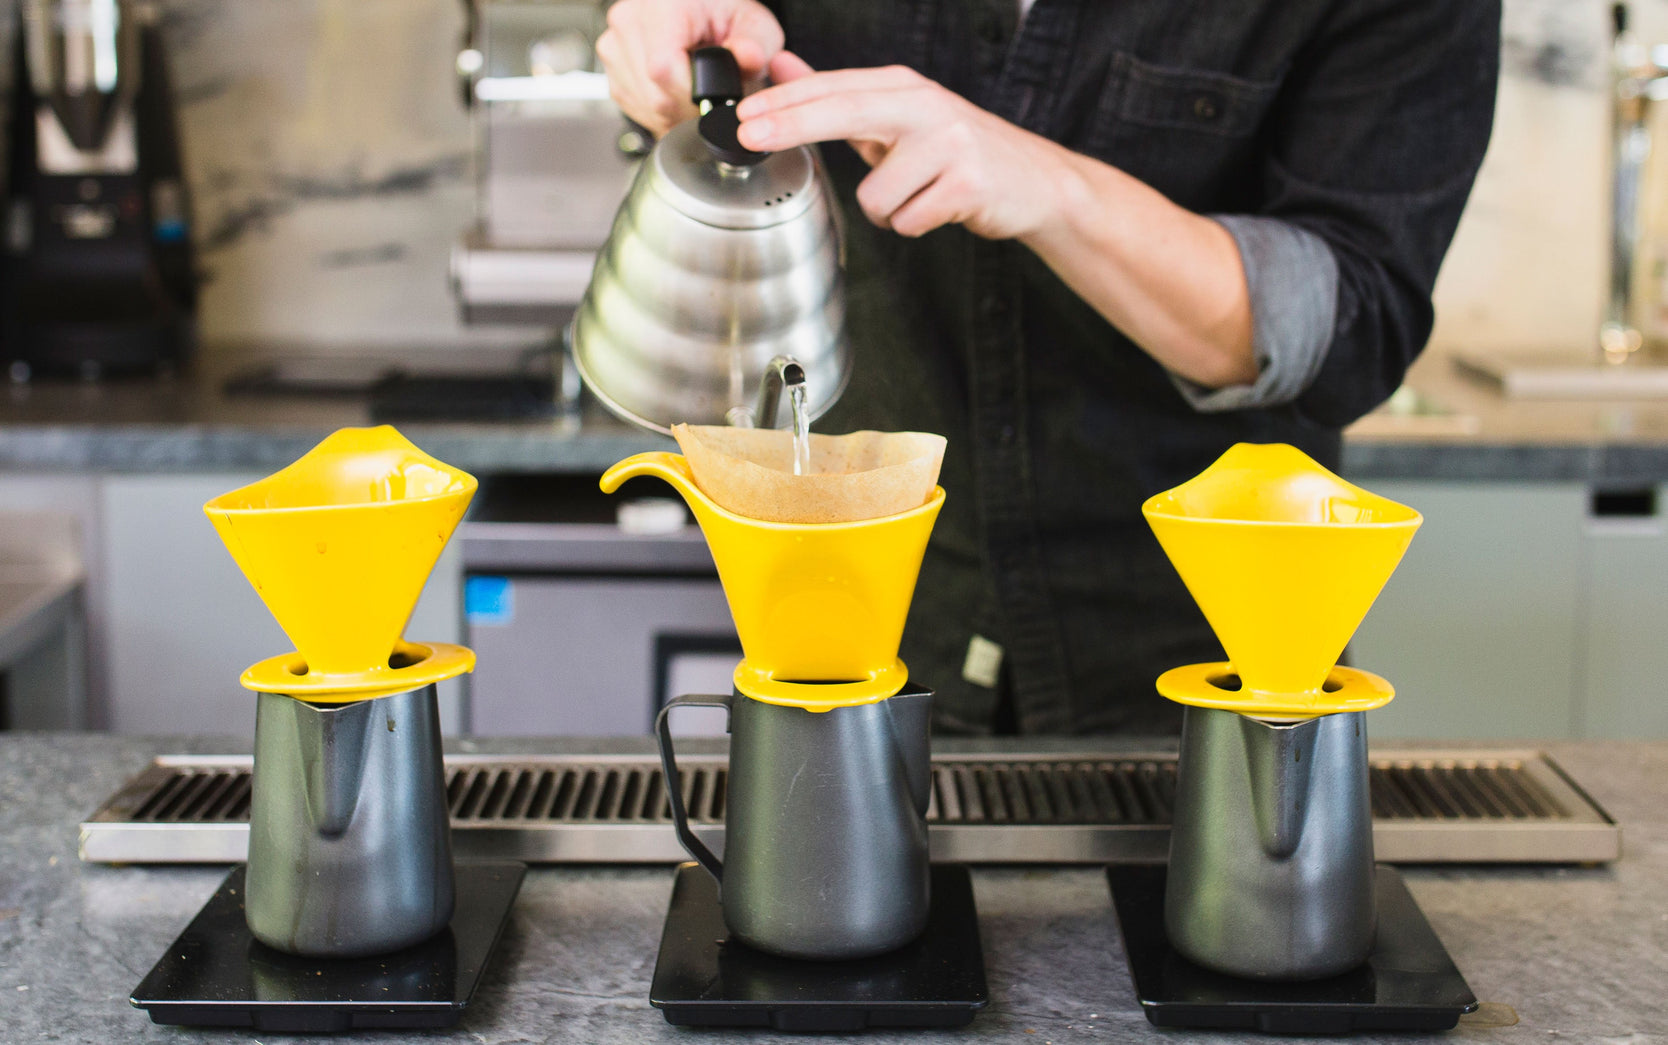 three sets of yellow bee house drippers, and black 20oz steaming pitchers sit in a row as a person brews coffee in the middle set, while pouring from a chrome hario v60 kettle